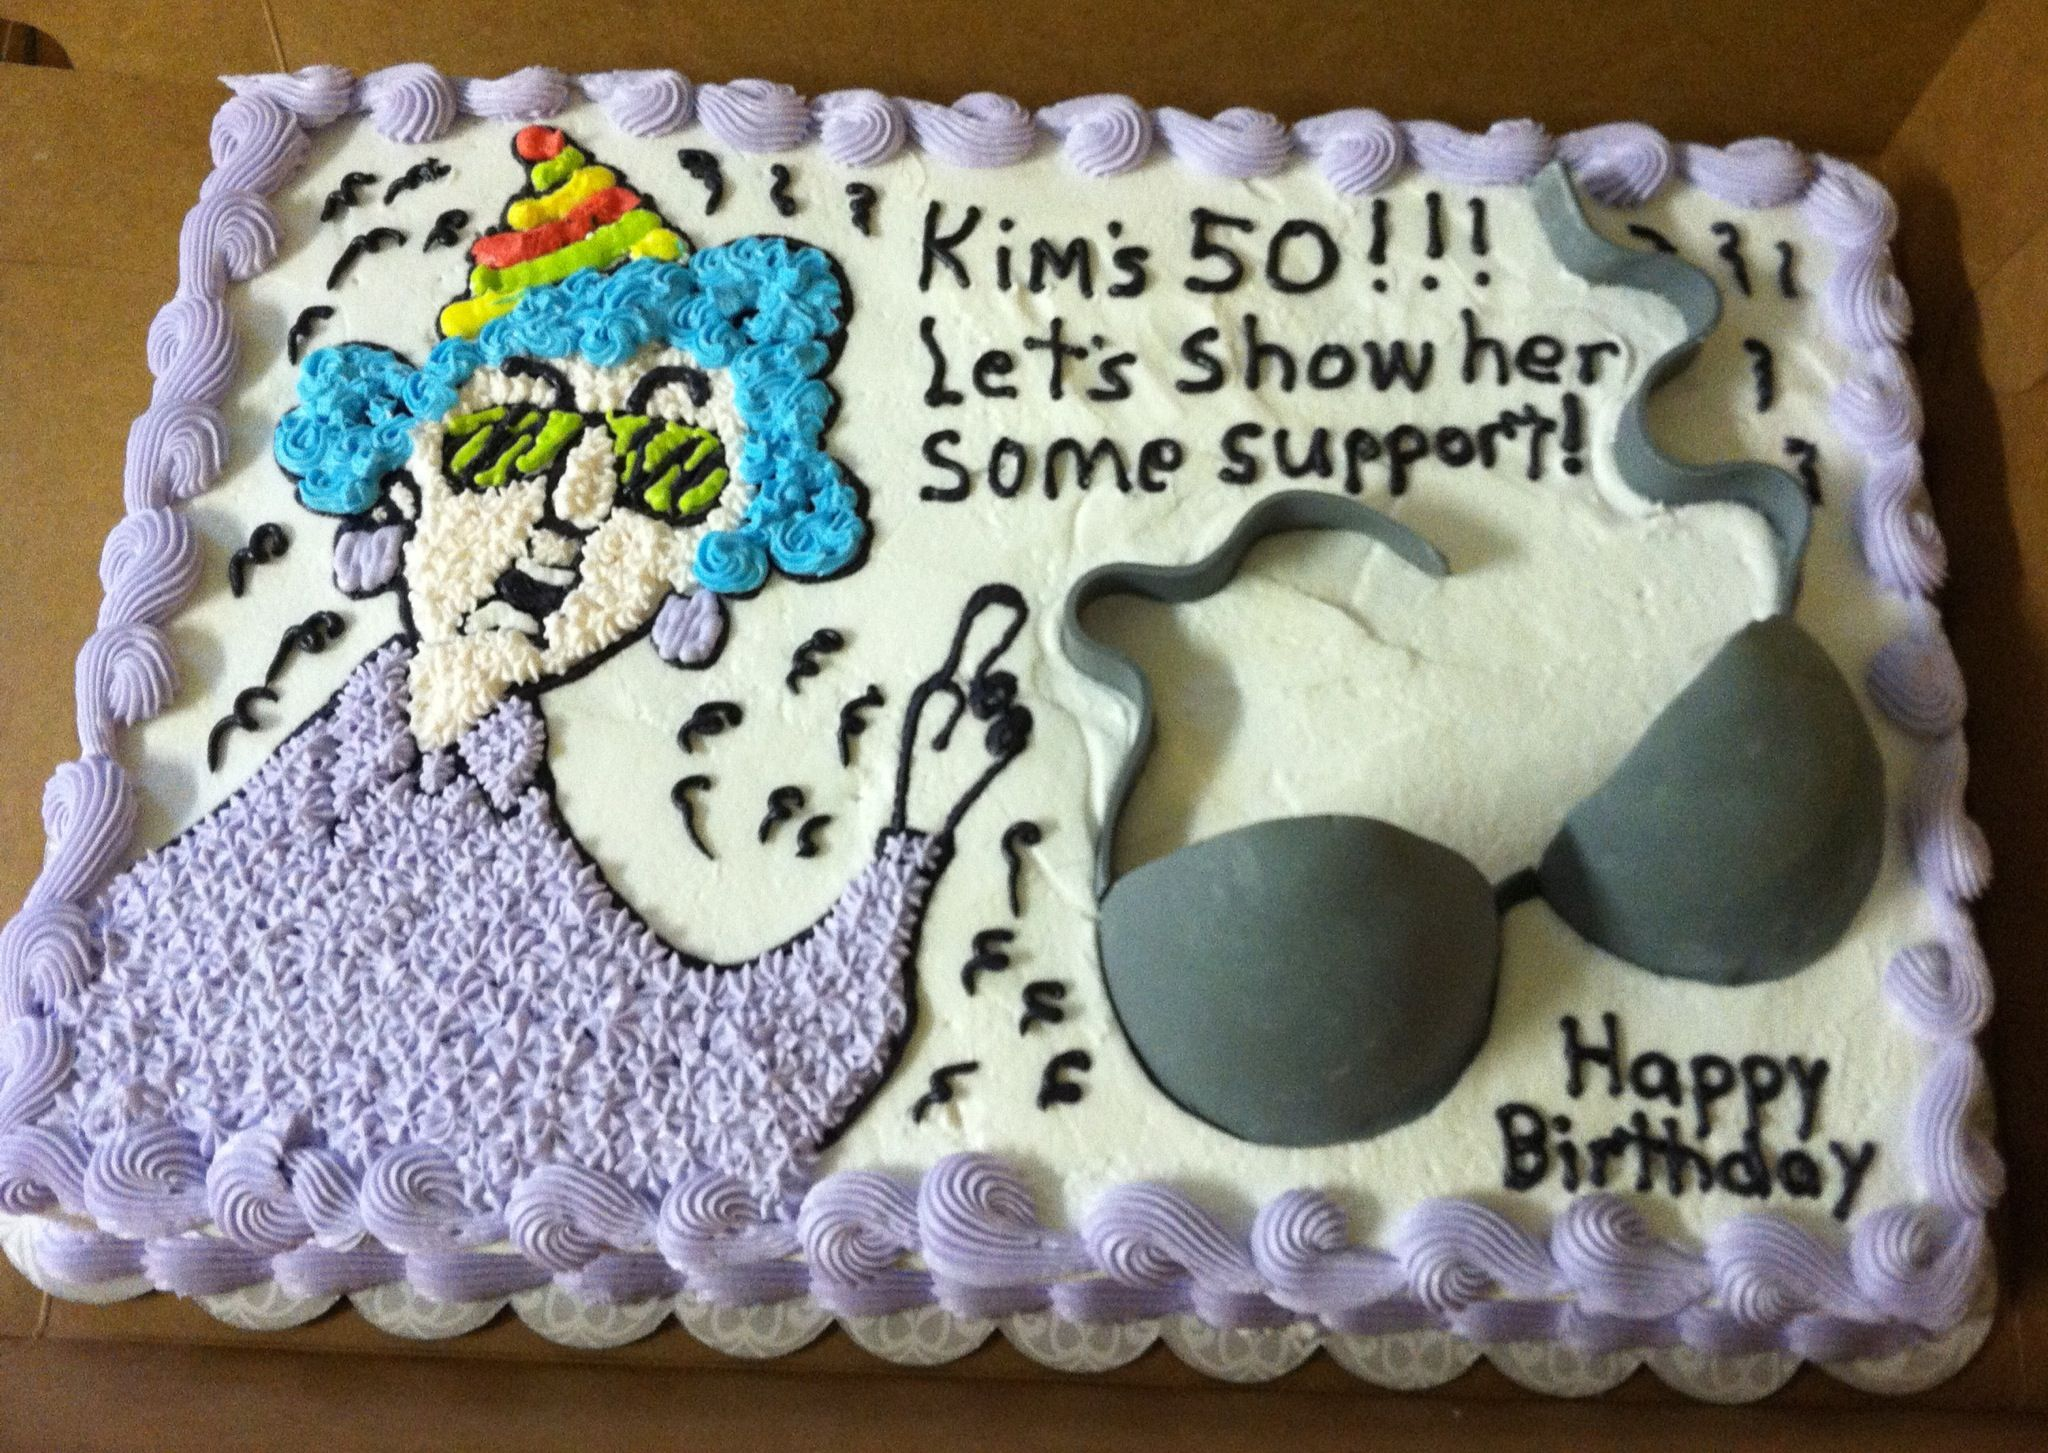 50th birthday cake cute cake ideas pinterest for 50th birthday cake decoration